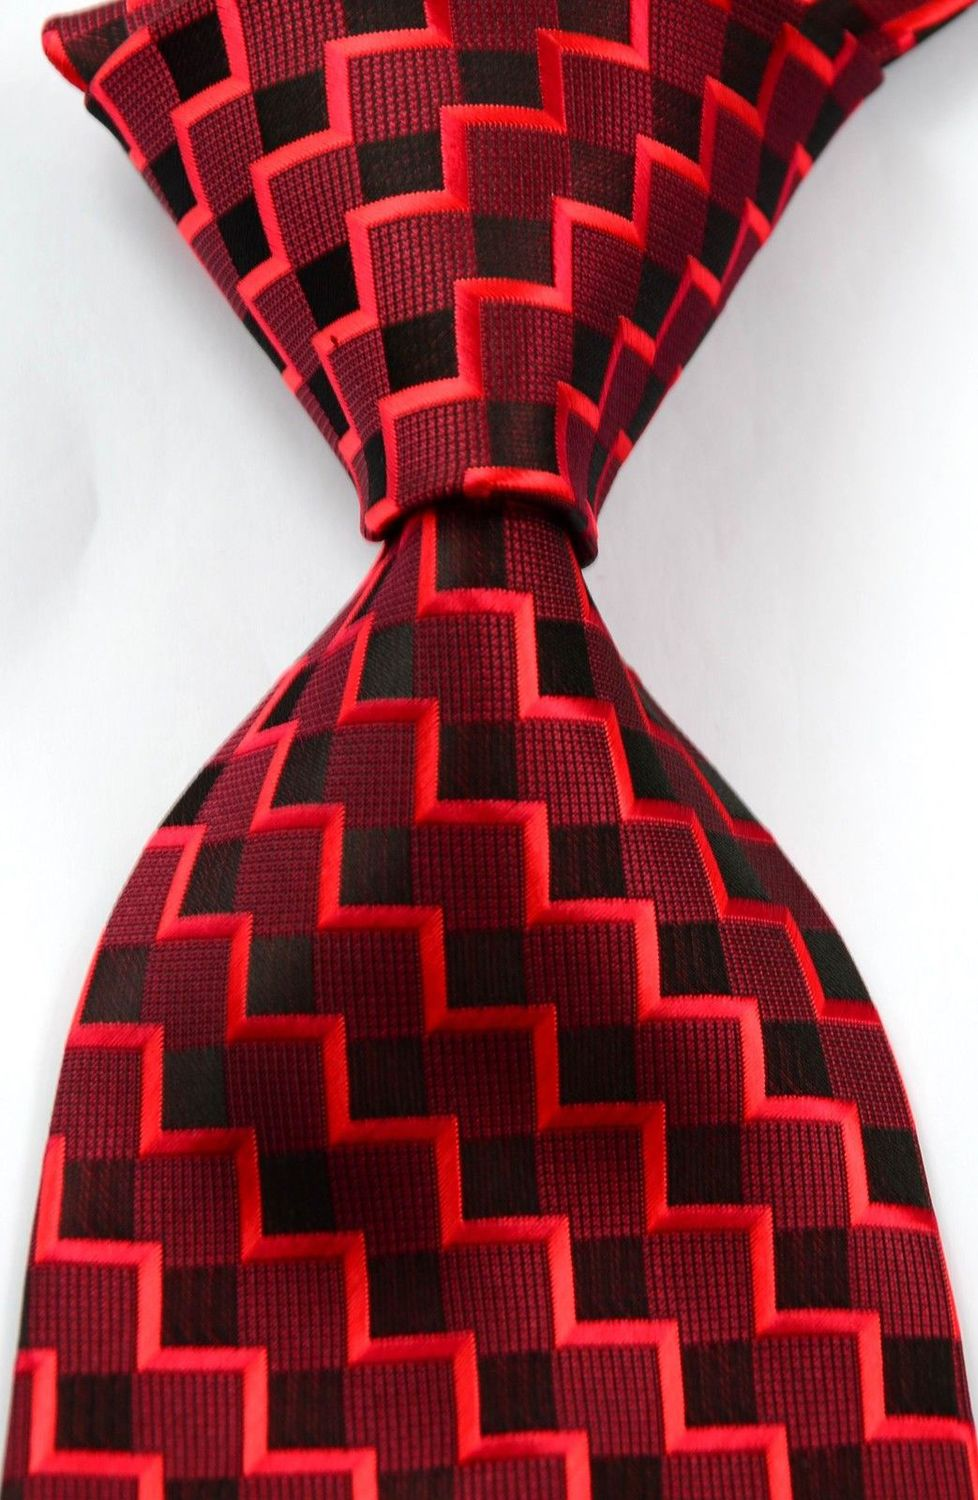 Classic Patterns Red JACQUARD WOVEN Silk Men's Tie Necktie #320 - wei669 store